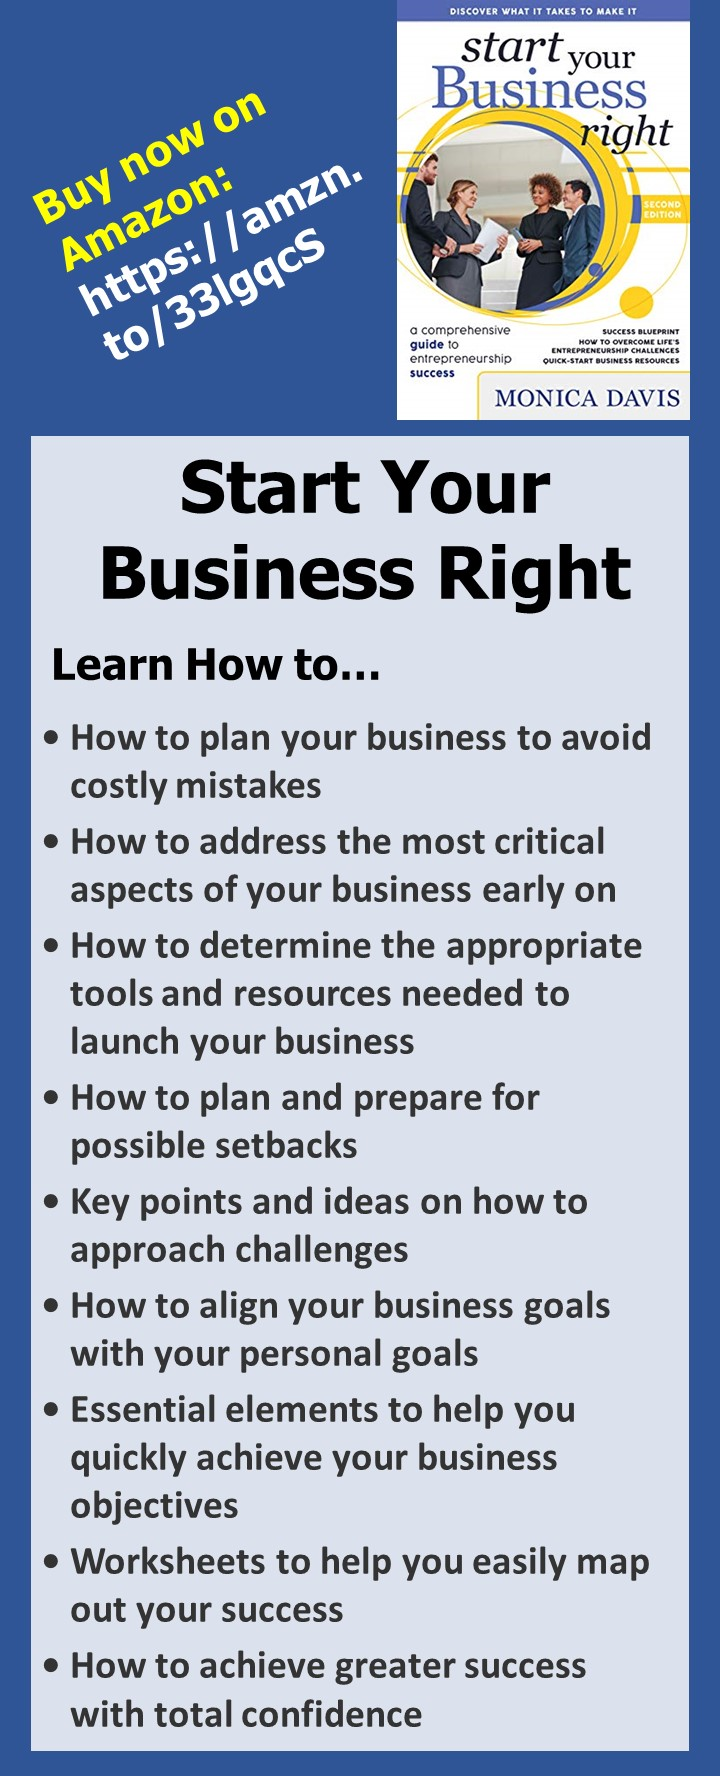 Start Your Business Right by Monica Davis